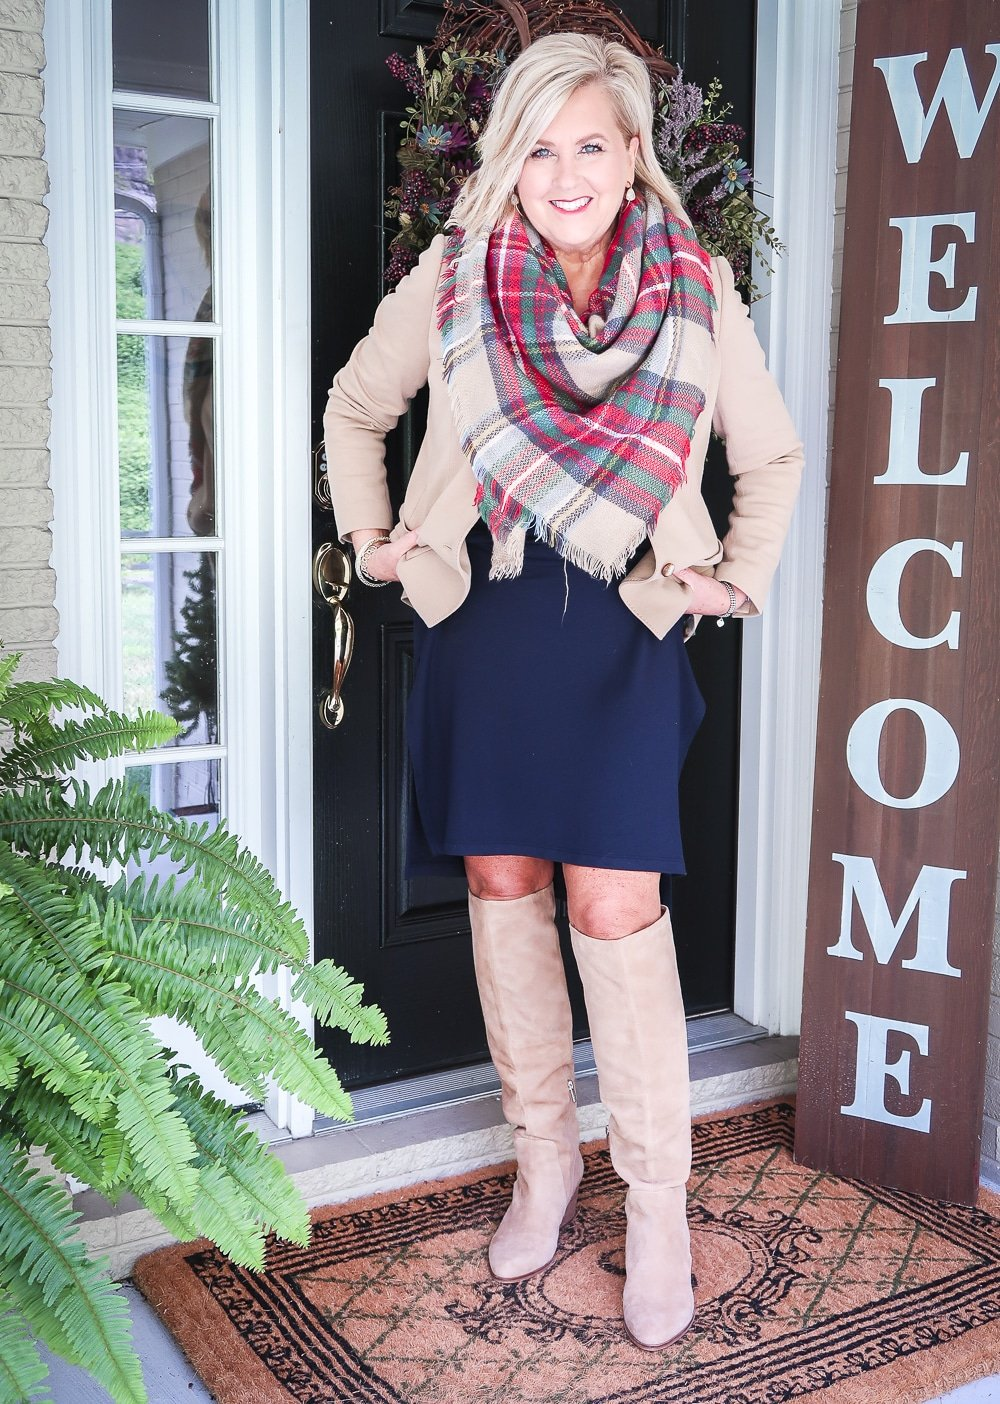 Fashion Blogger 50 Is Not Old is wearing a navy midi dress a tan blazer, a blanket scarf, and tan knee boots